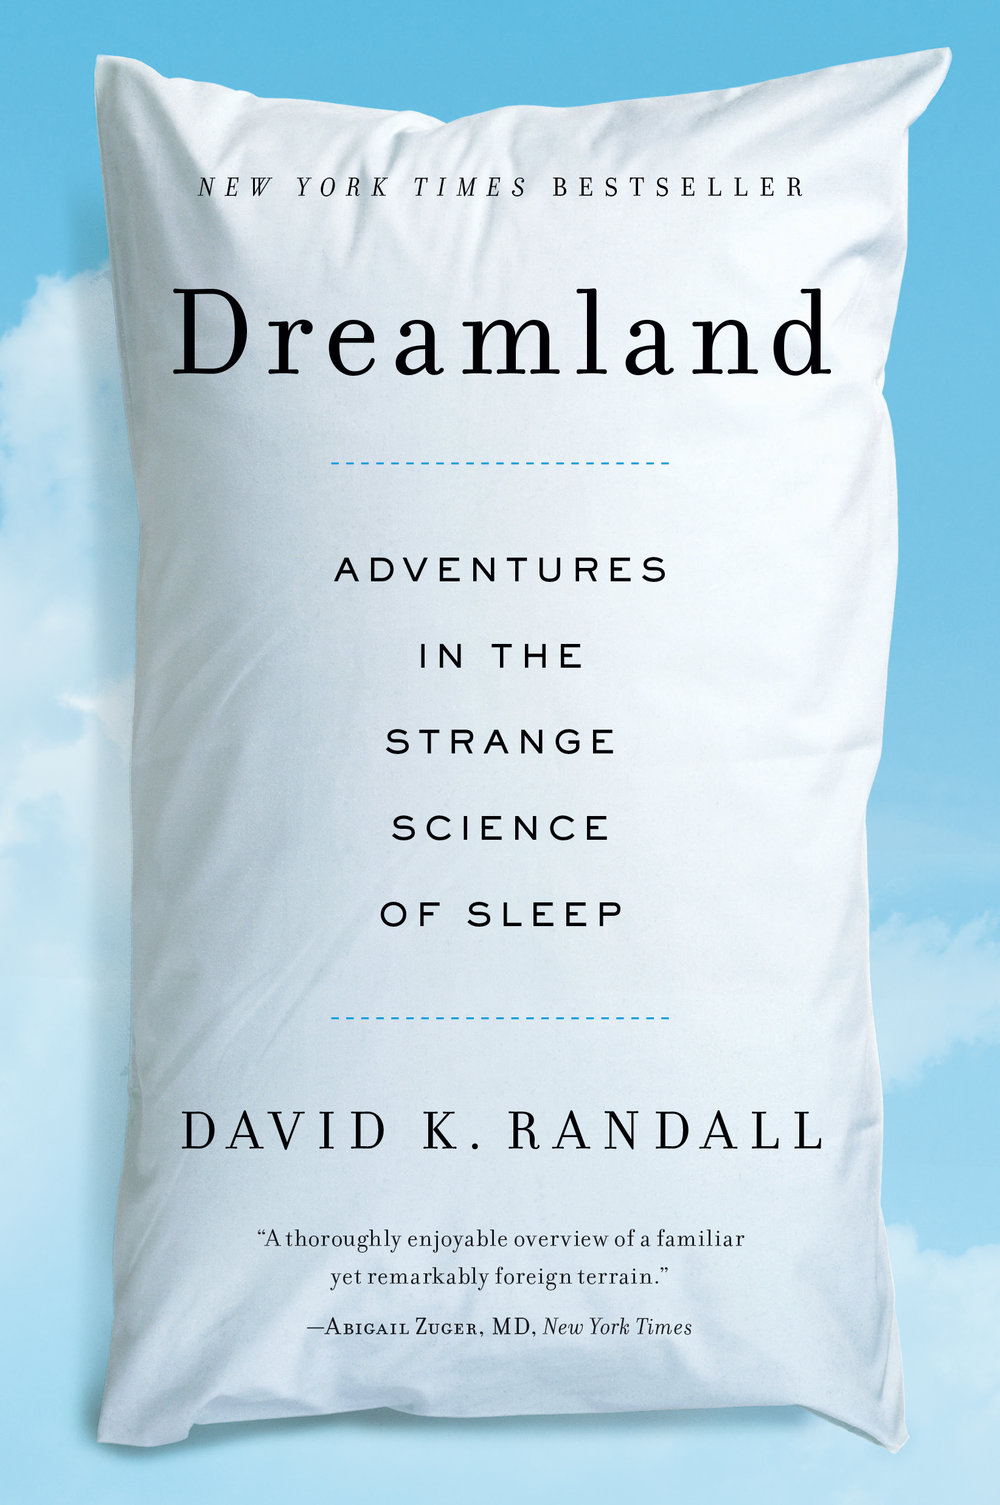 DREAMLAND - A journey into one of the youngest and strangest fields of science.